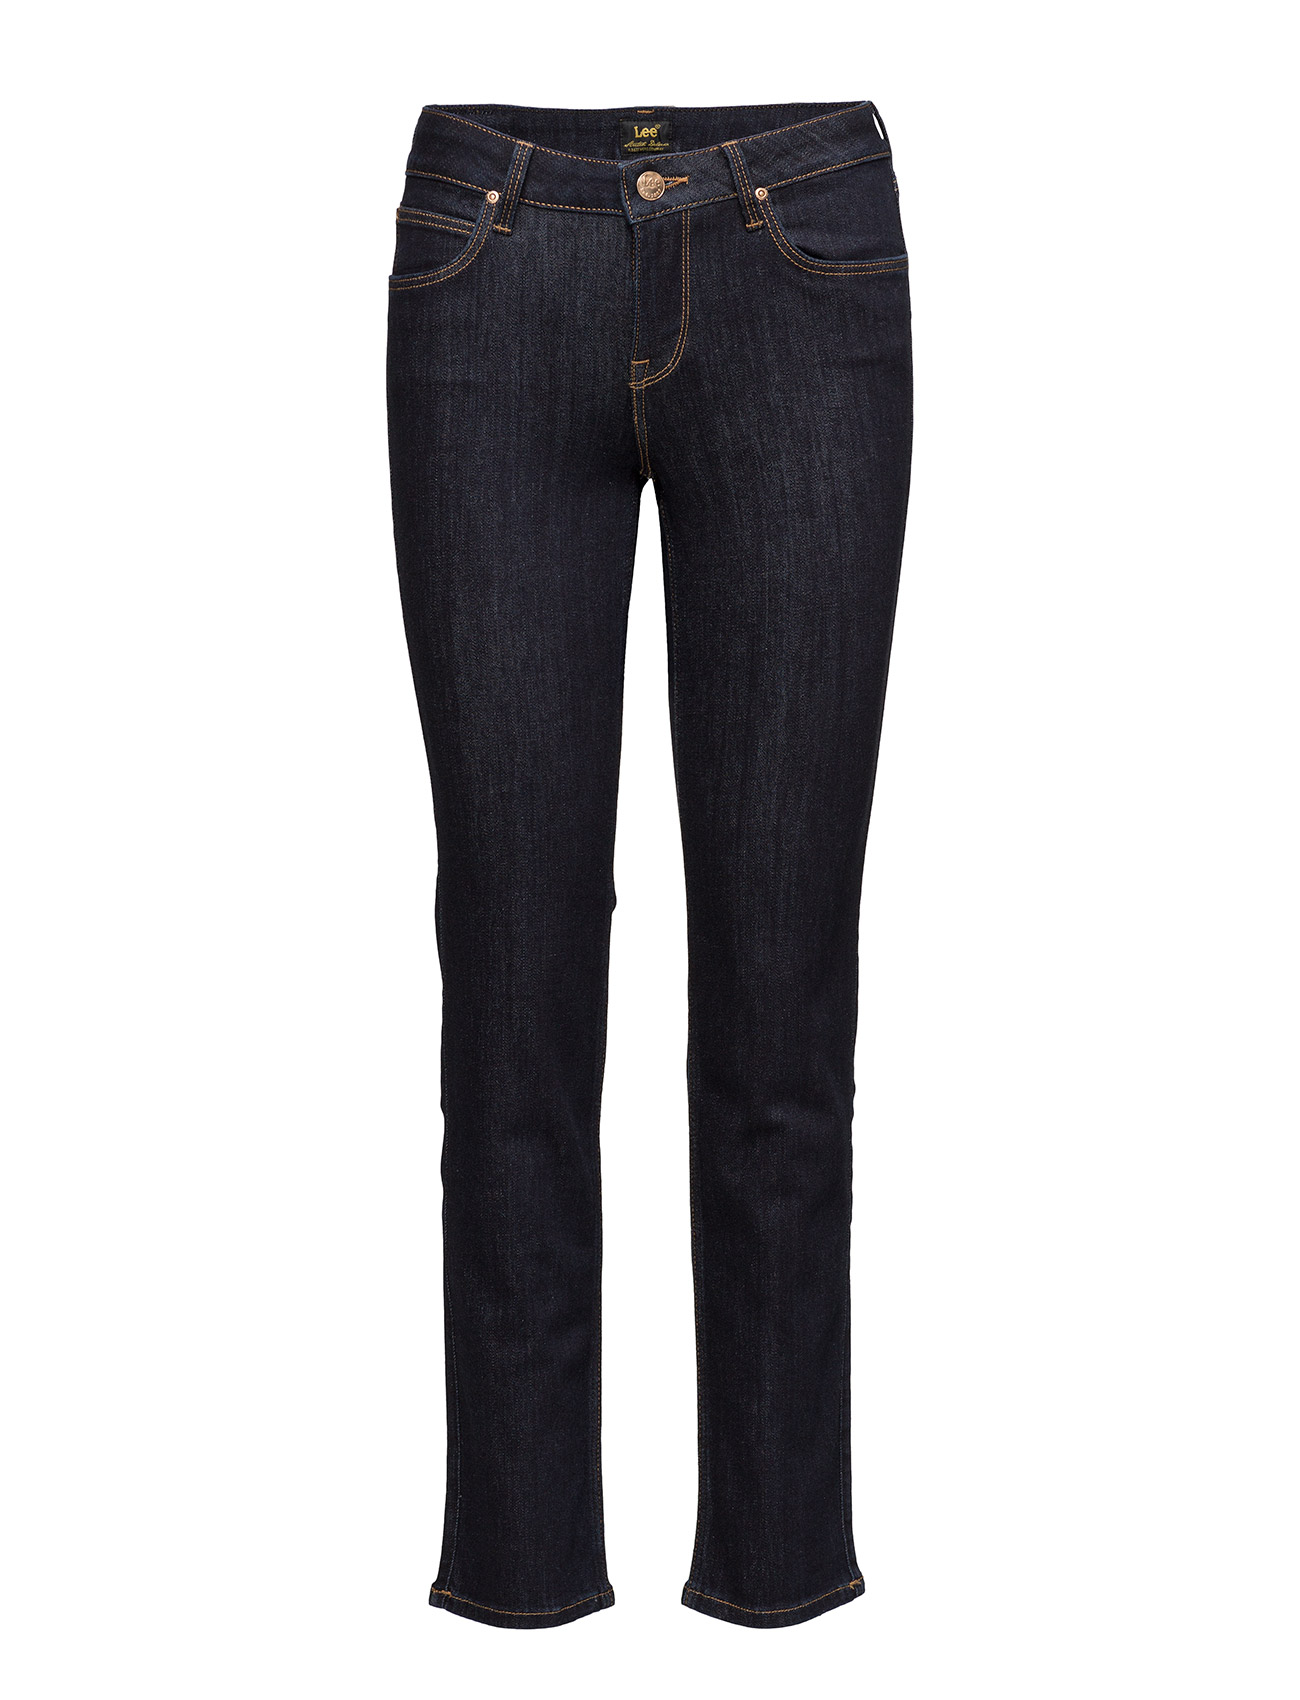 Lee Jeans MARION STRAIGHT - ONE WASH